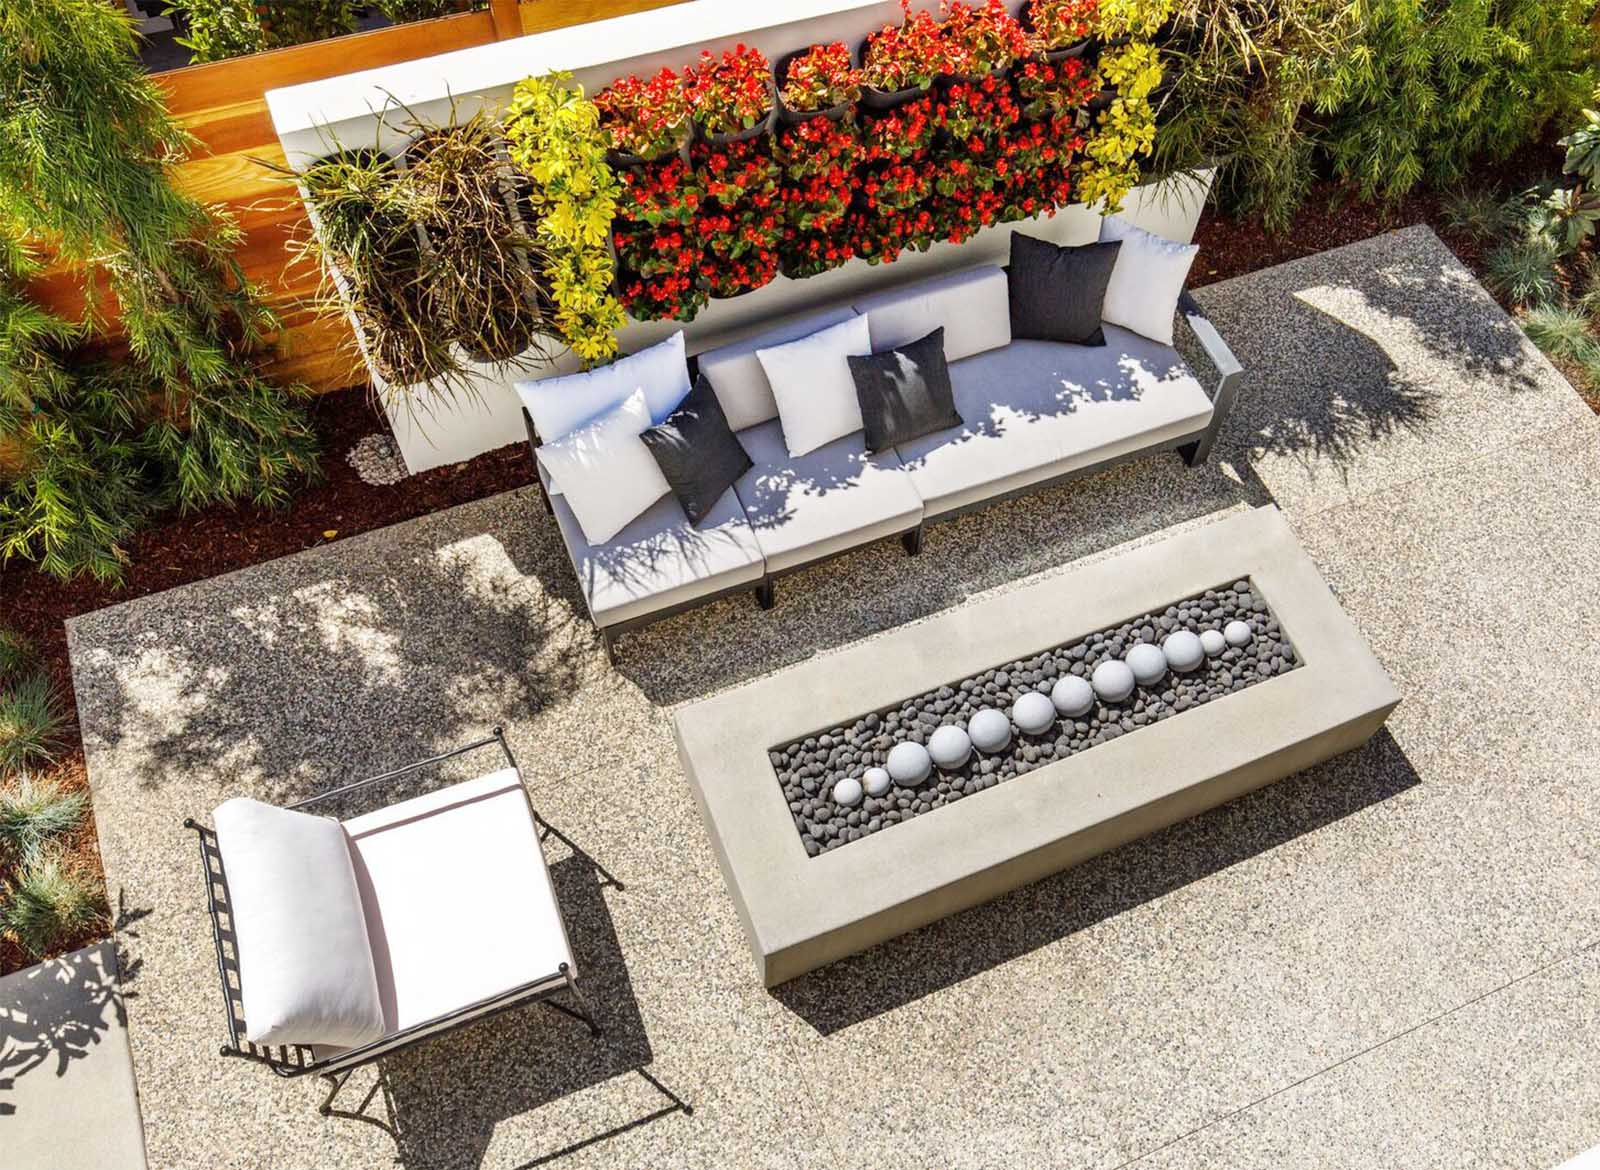 Tips to Get Your Patio Ready for Summer with the Wally Eco